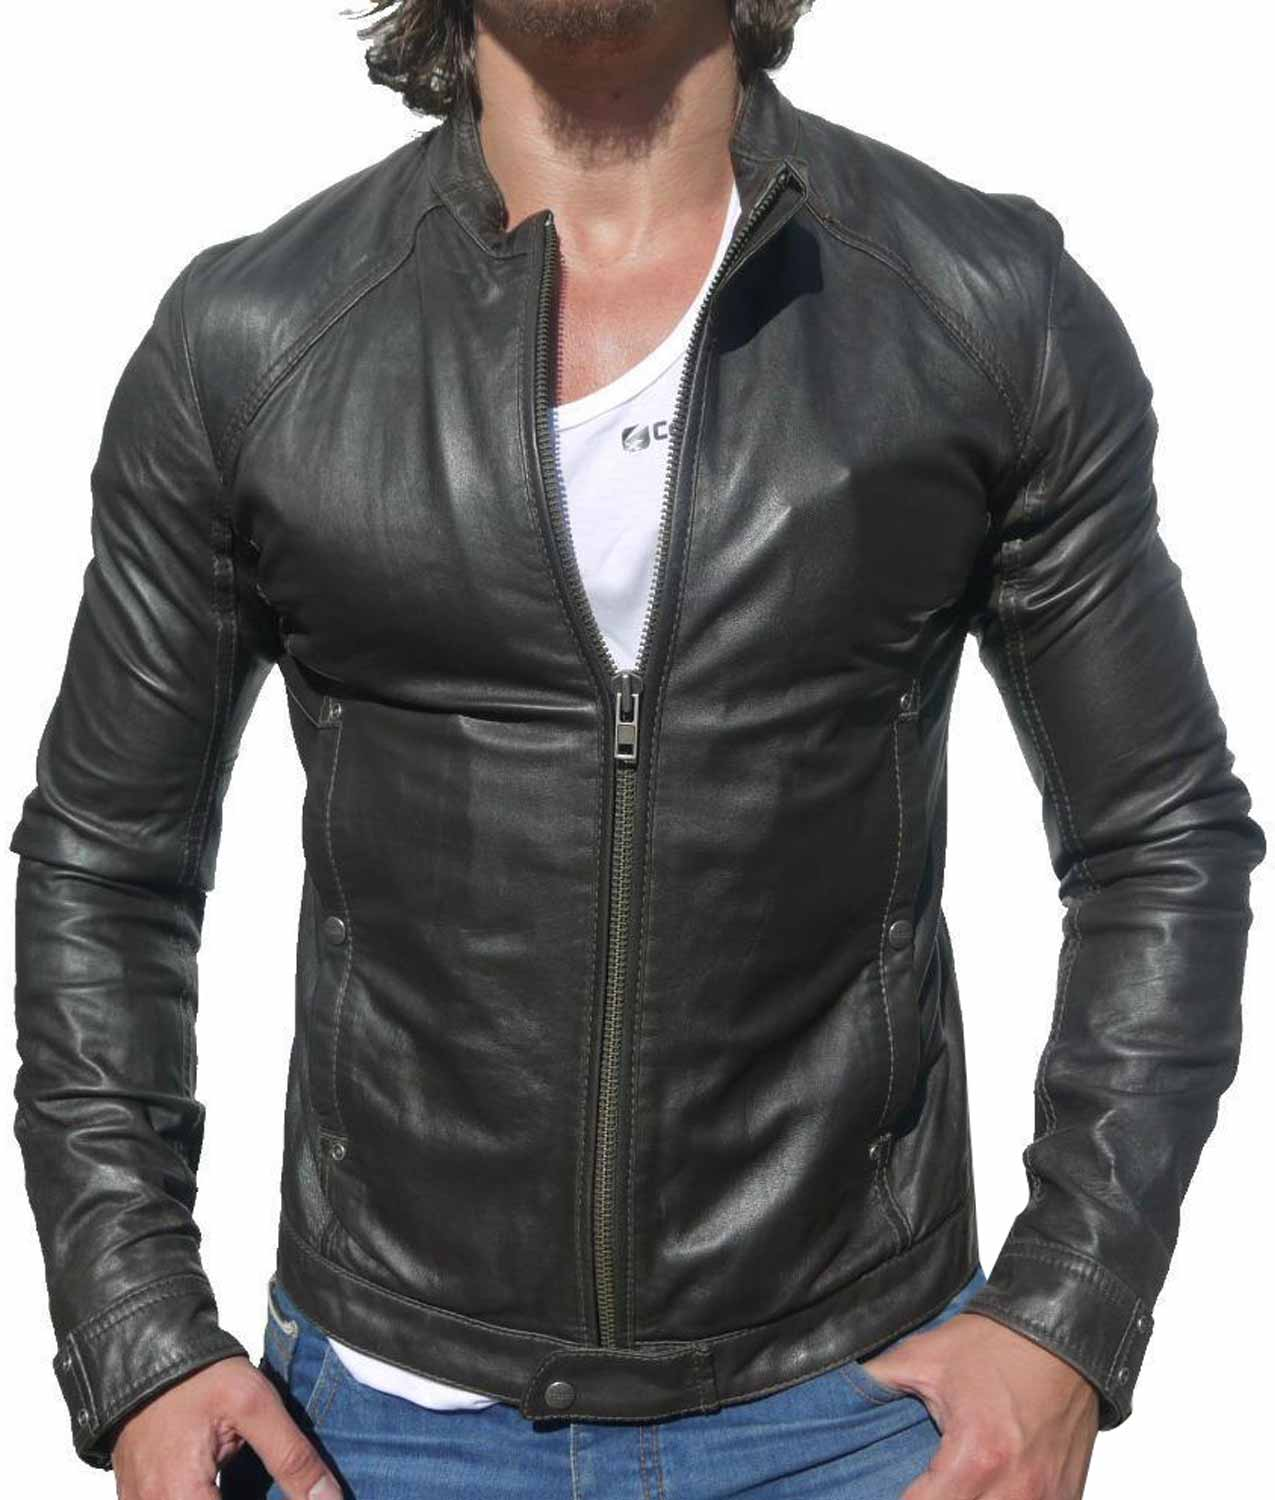 c7924d4b3c58 Bradley Cooper Limitless Leather Jacket - Jackets Creator